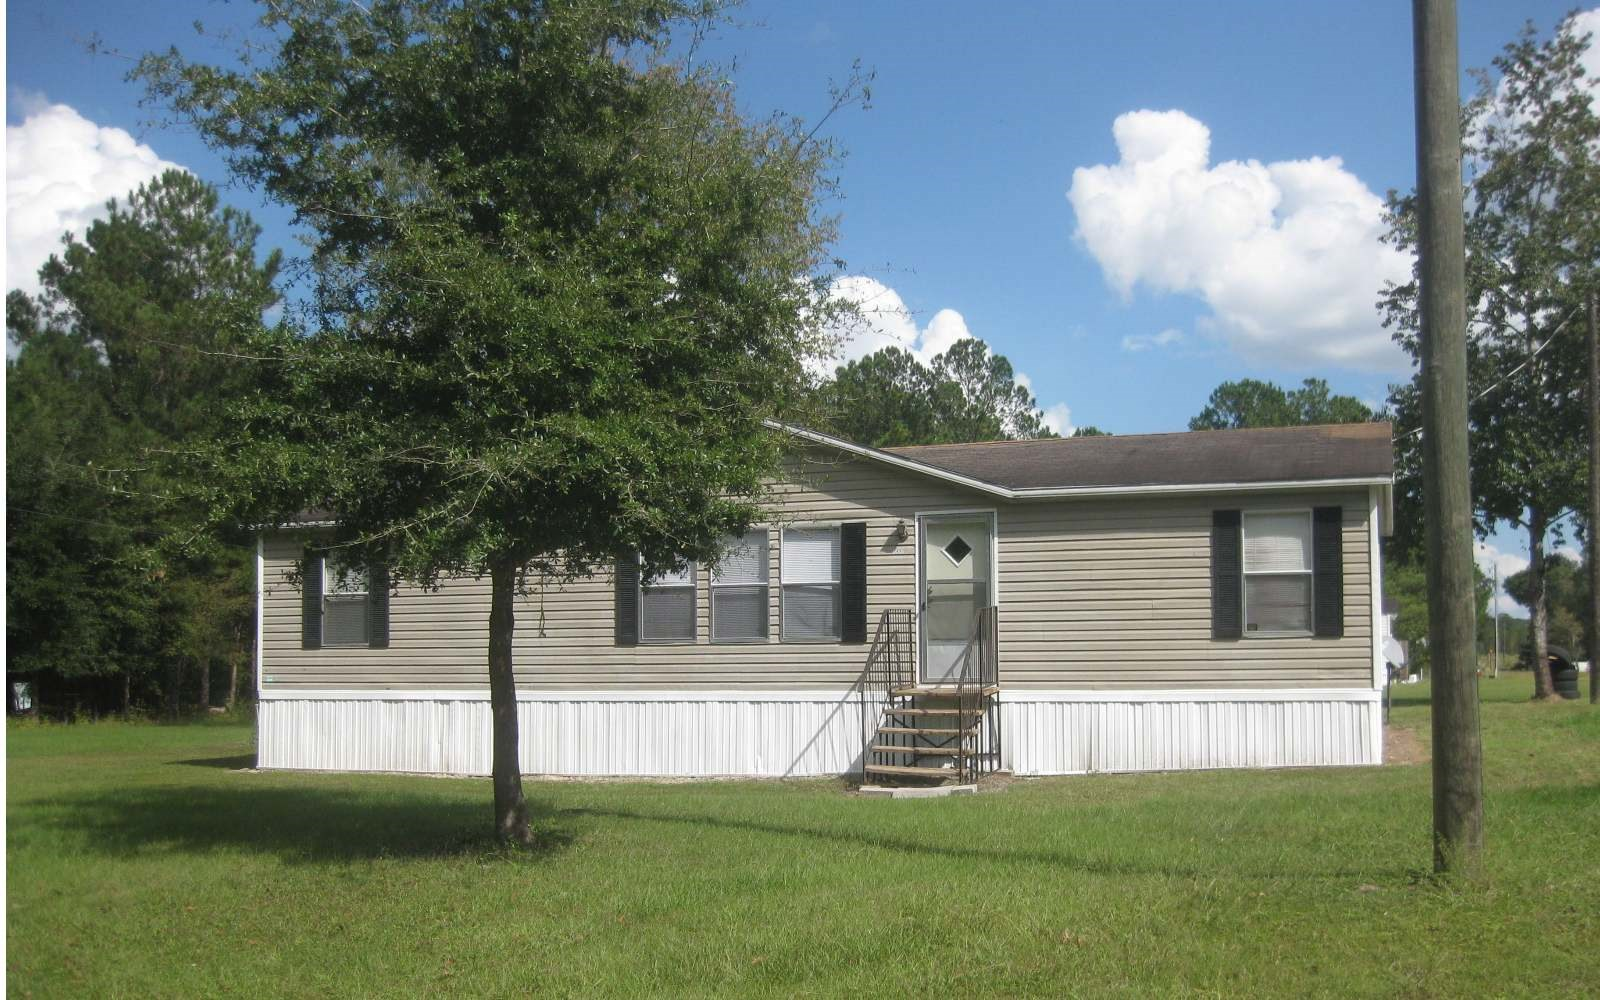 GREAT INVESTMENT OPPORTUNITY TO PURCHASE 5 RENTALS